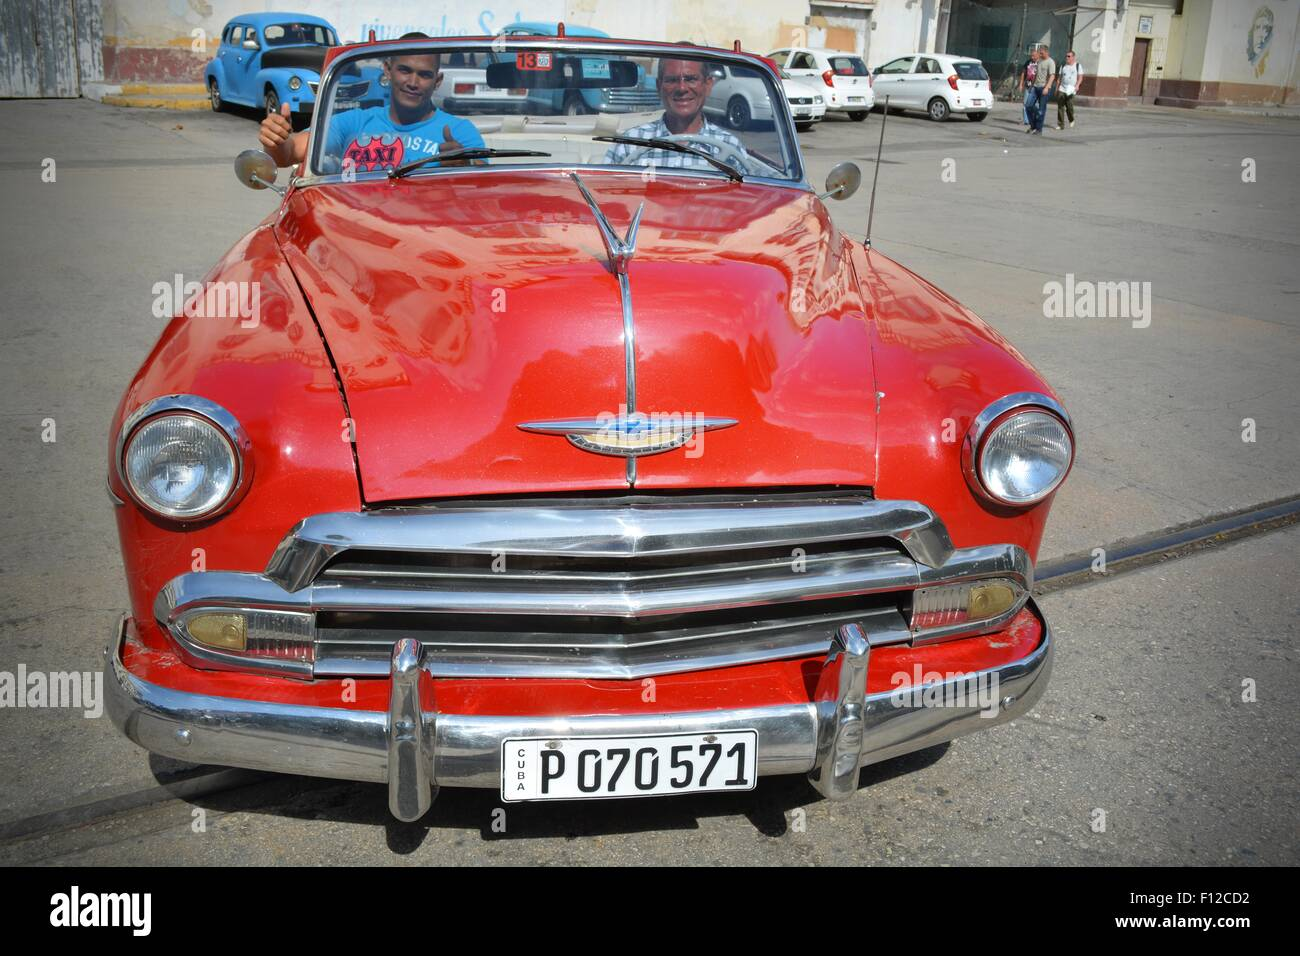 Gleaming red, vintage, soft top taxi, with driver and passenger ready to depart from parking lot in Havana, Cuba - Stock Image